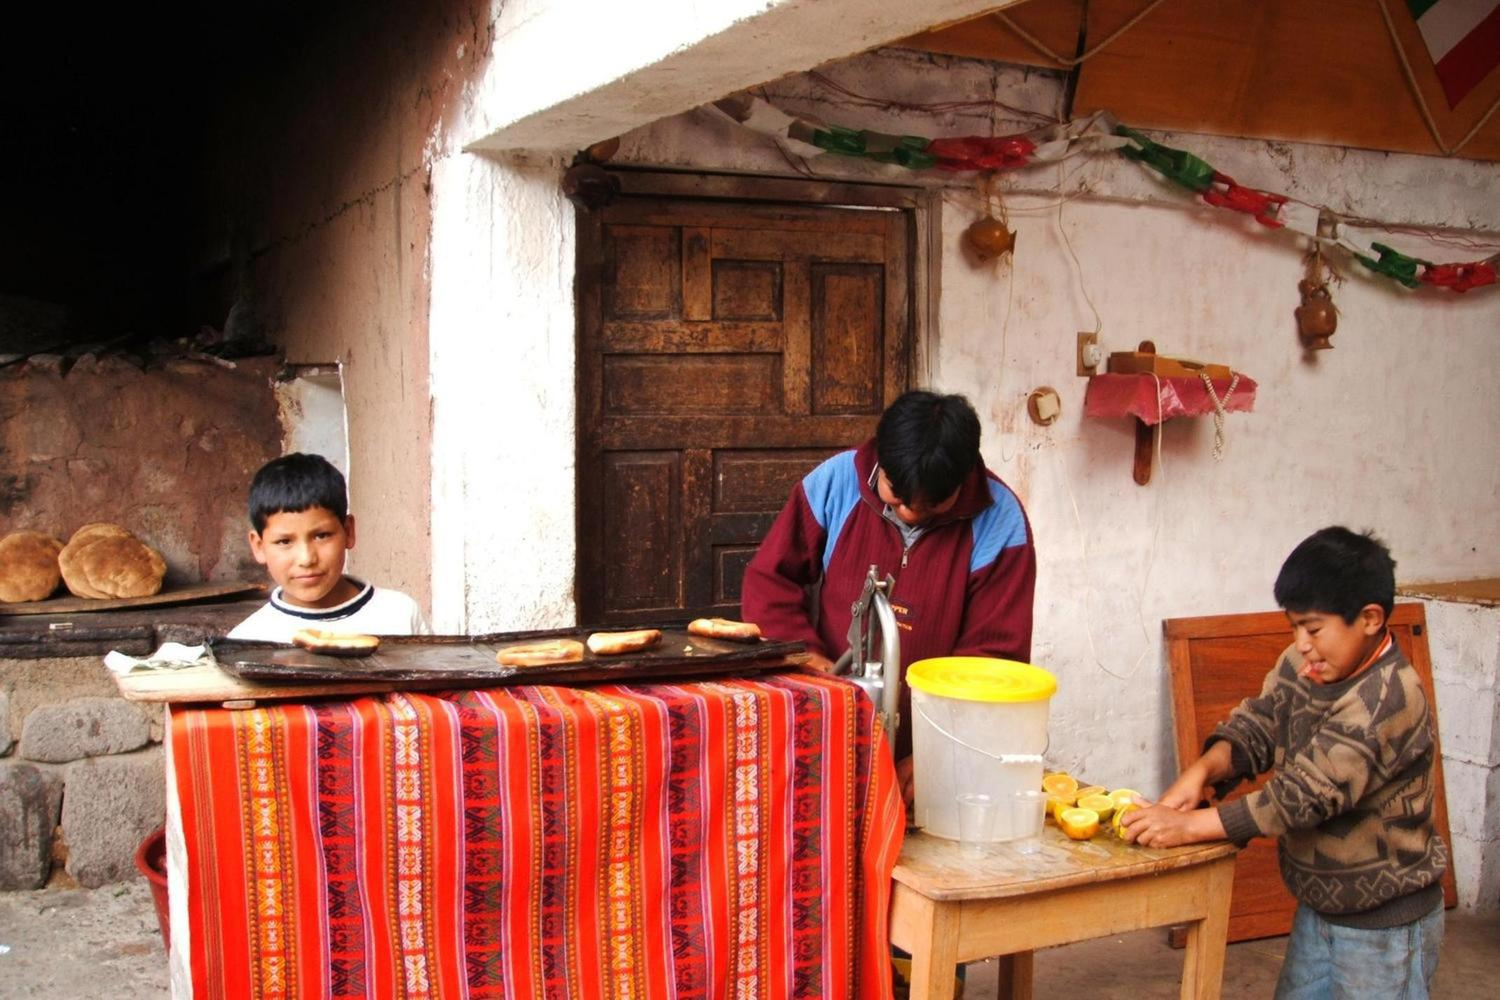 peru-cusco-sacred-valley-piscac-market-family-making-food